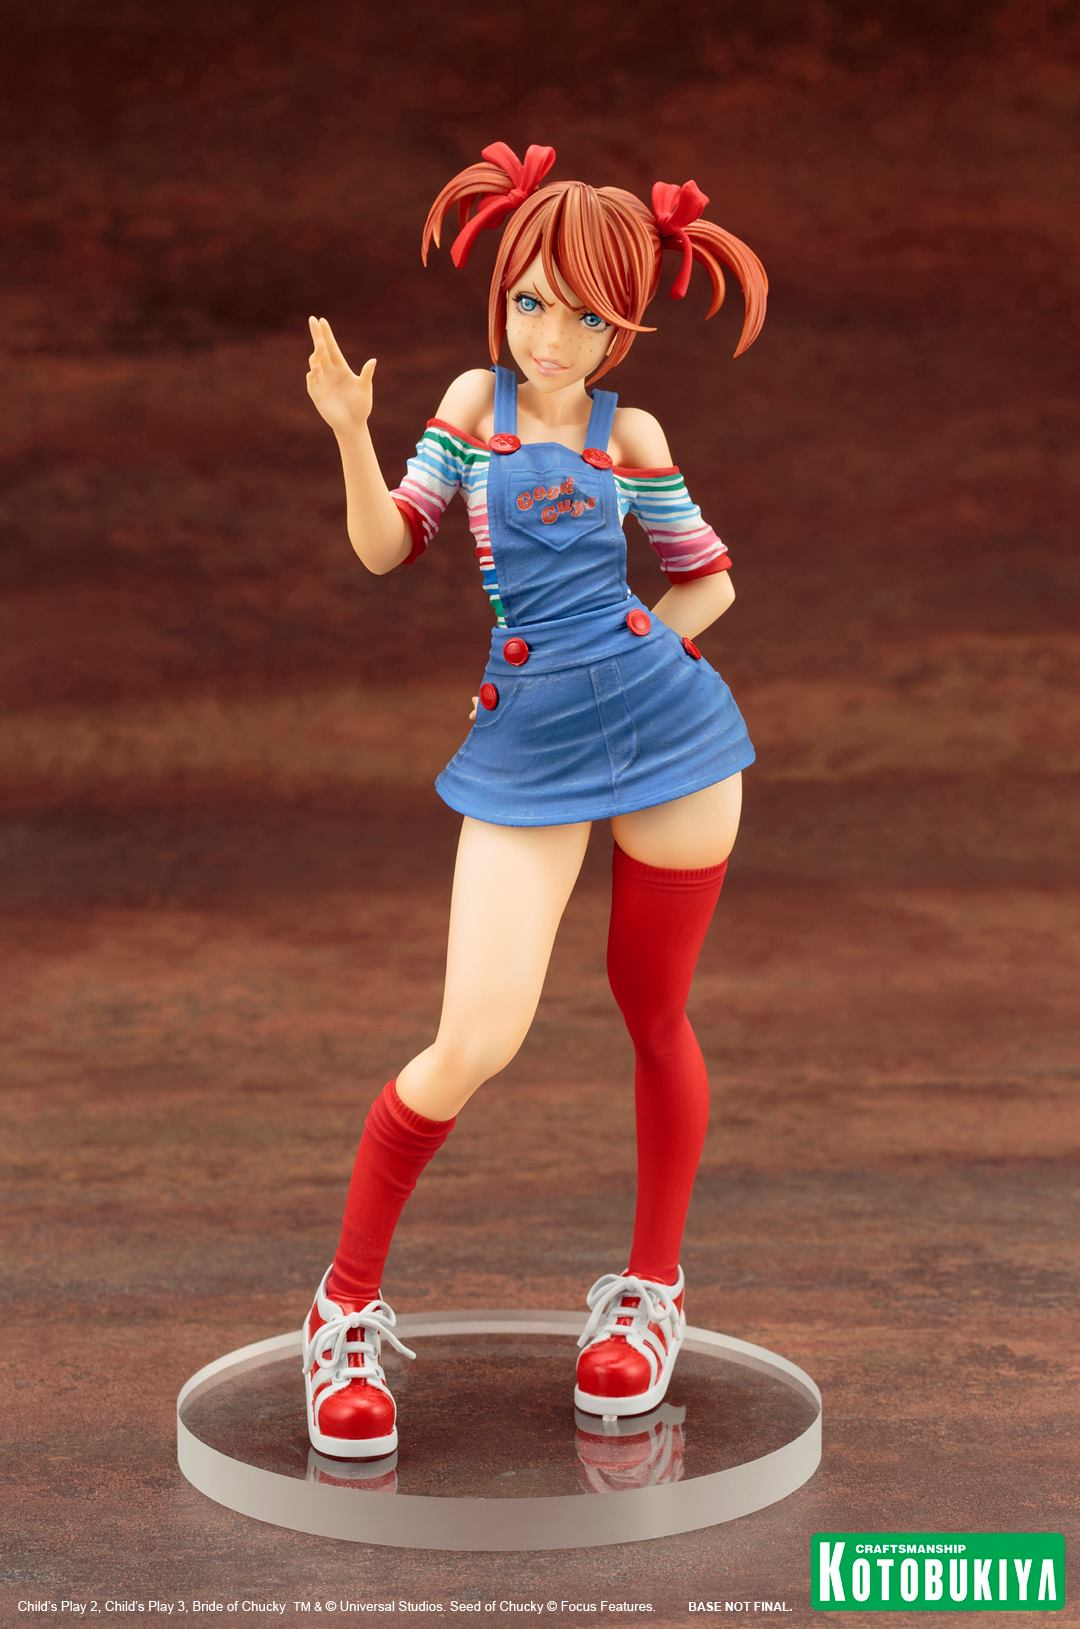 childs-play-chucky-exclusive-deluxe-version-bishoujo-statue-kotobukiya-2a